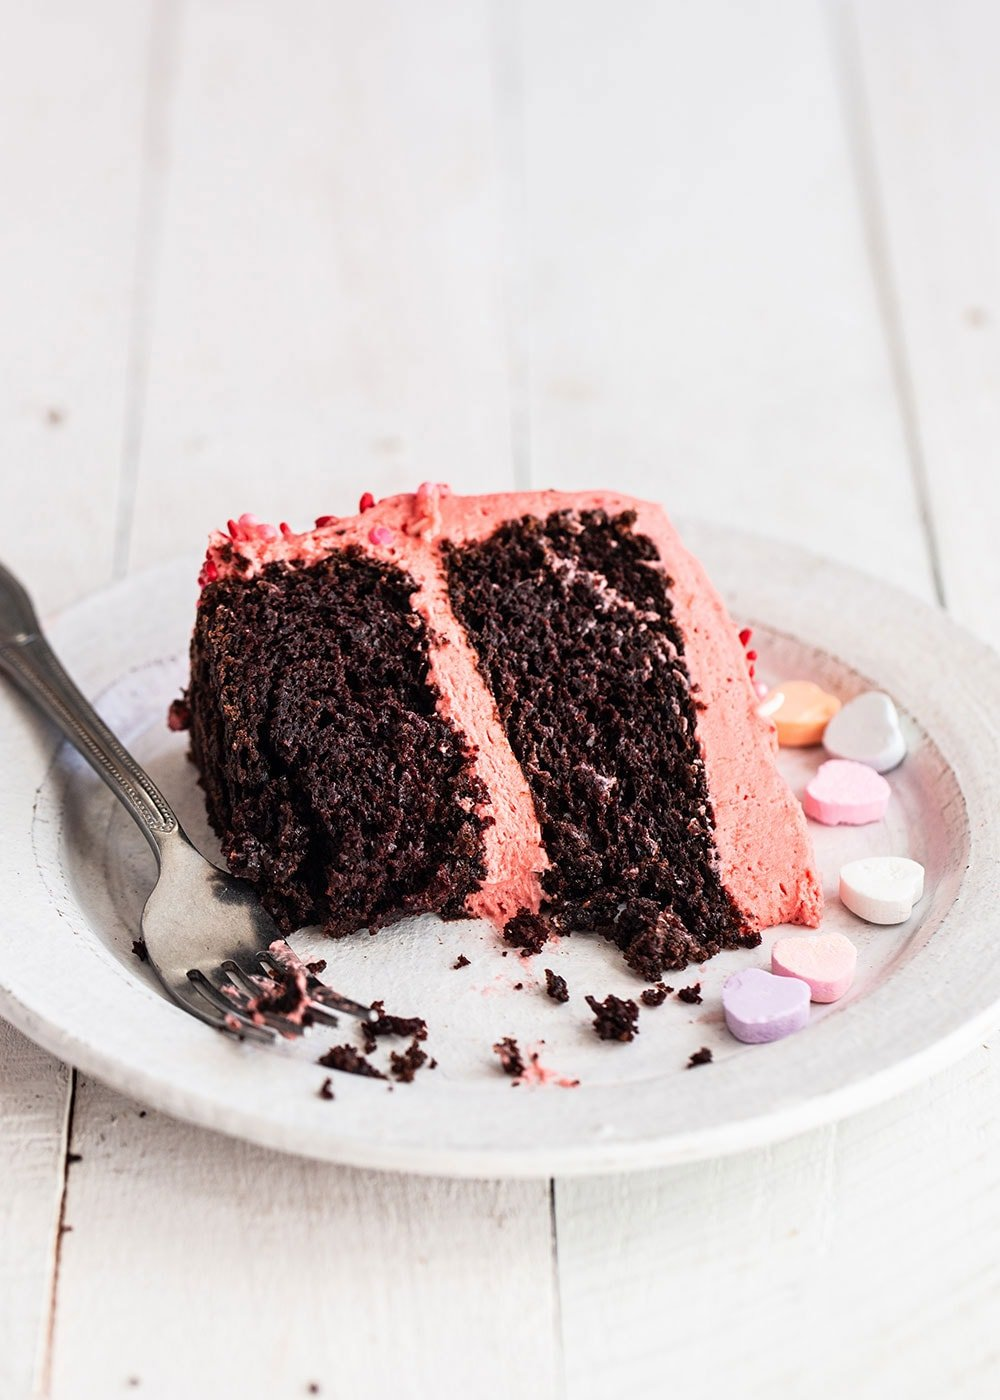 Slice of chocolate cake with strawberry frosting on a plate with Valentine Conversation heart candies